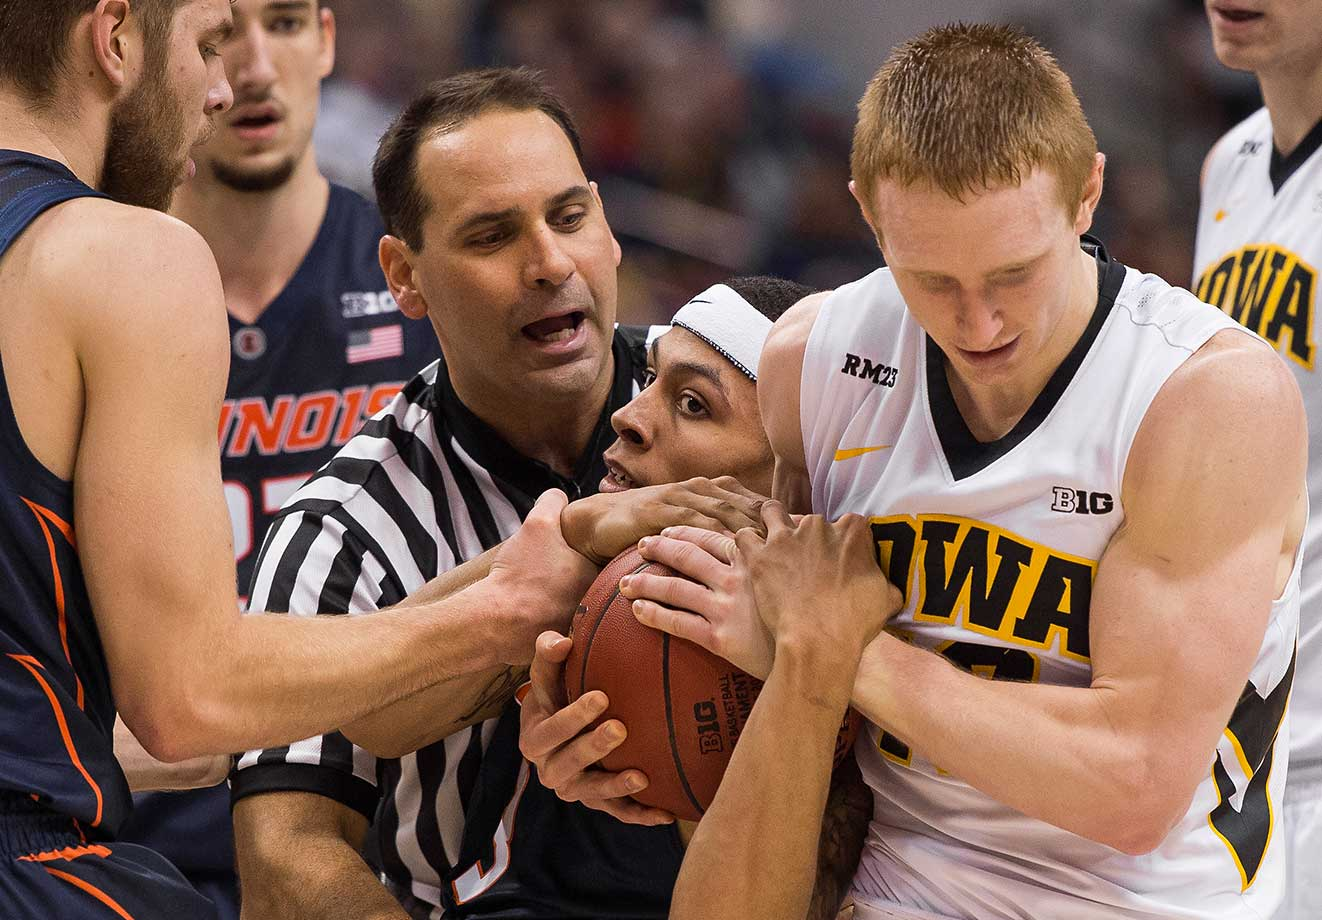 Iowa guard Mike Gesell battles for a held ball during a Big Ten Tournament game against Illinois.